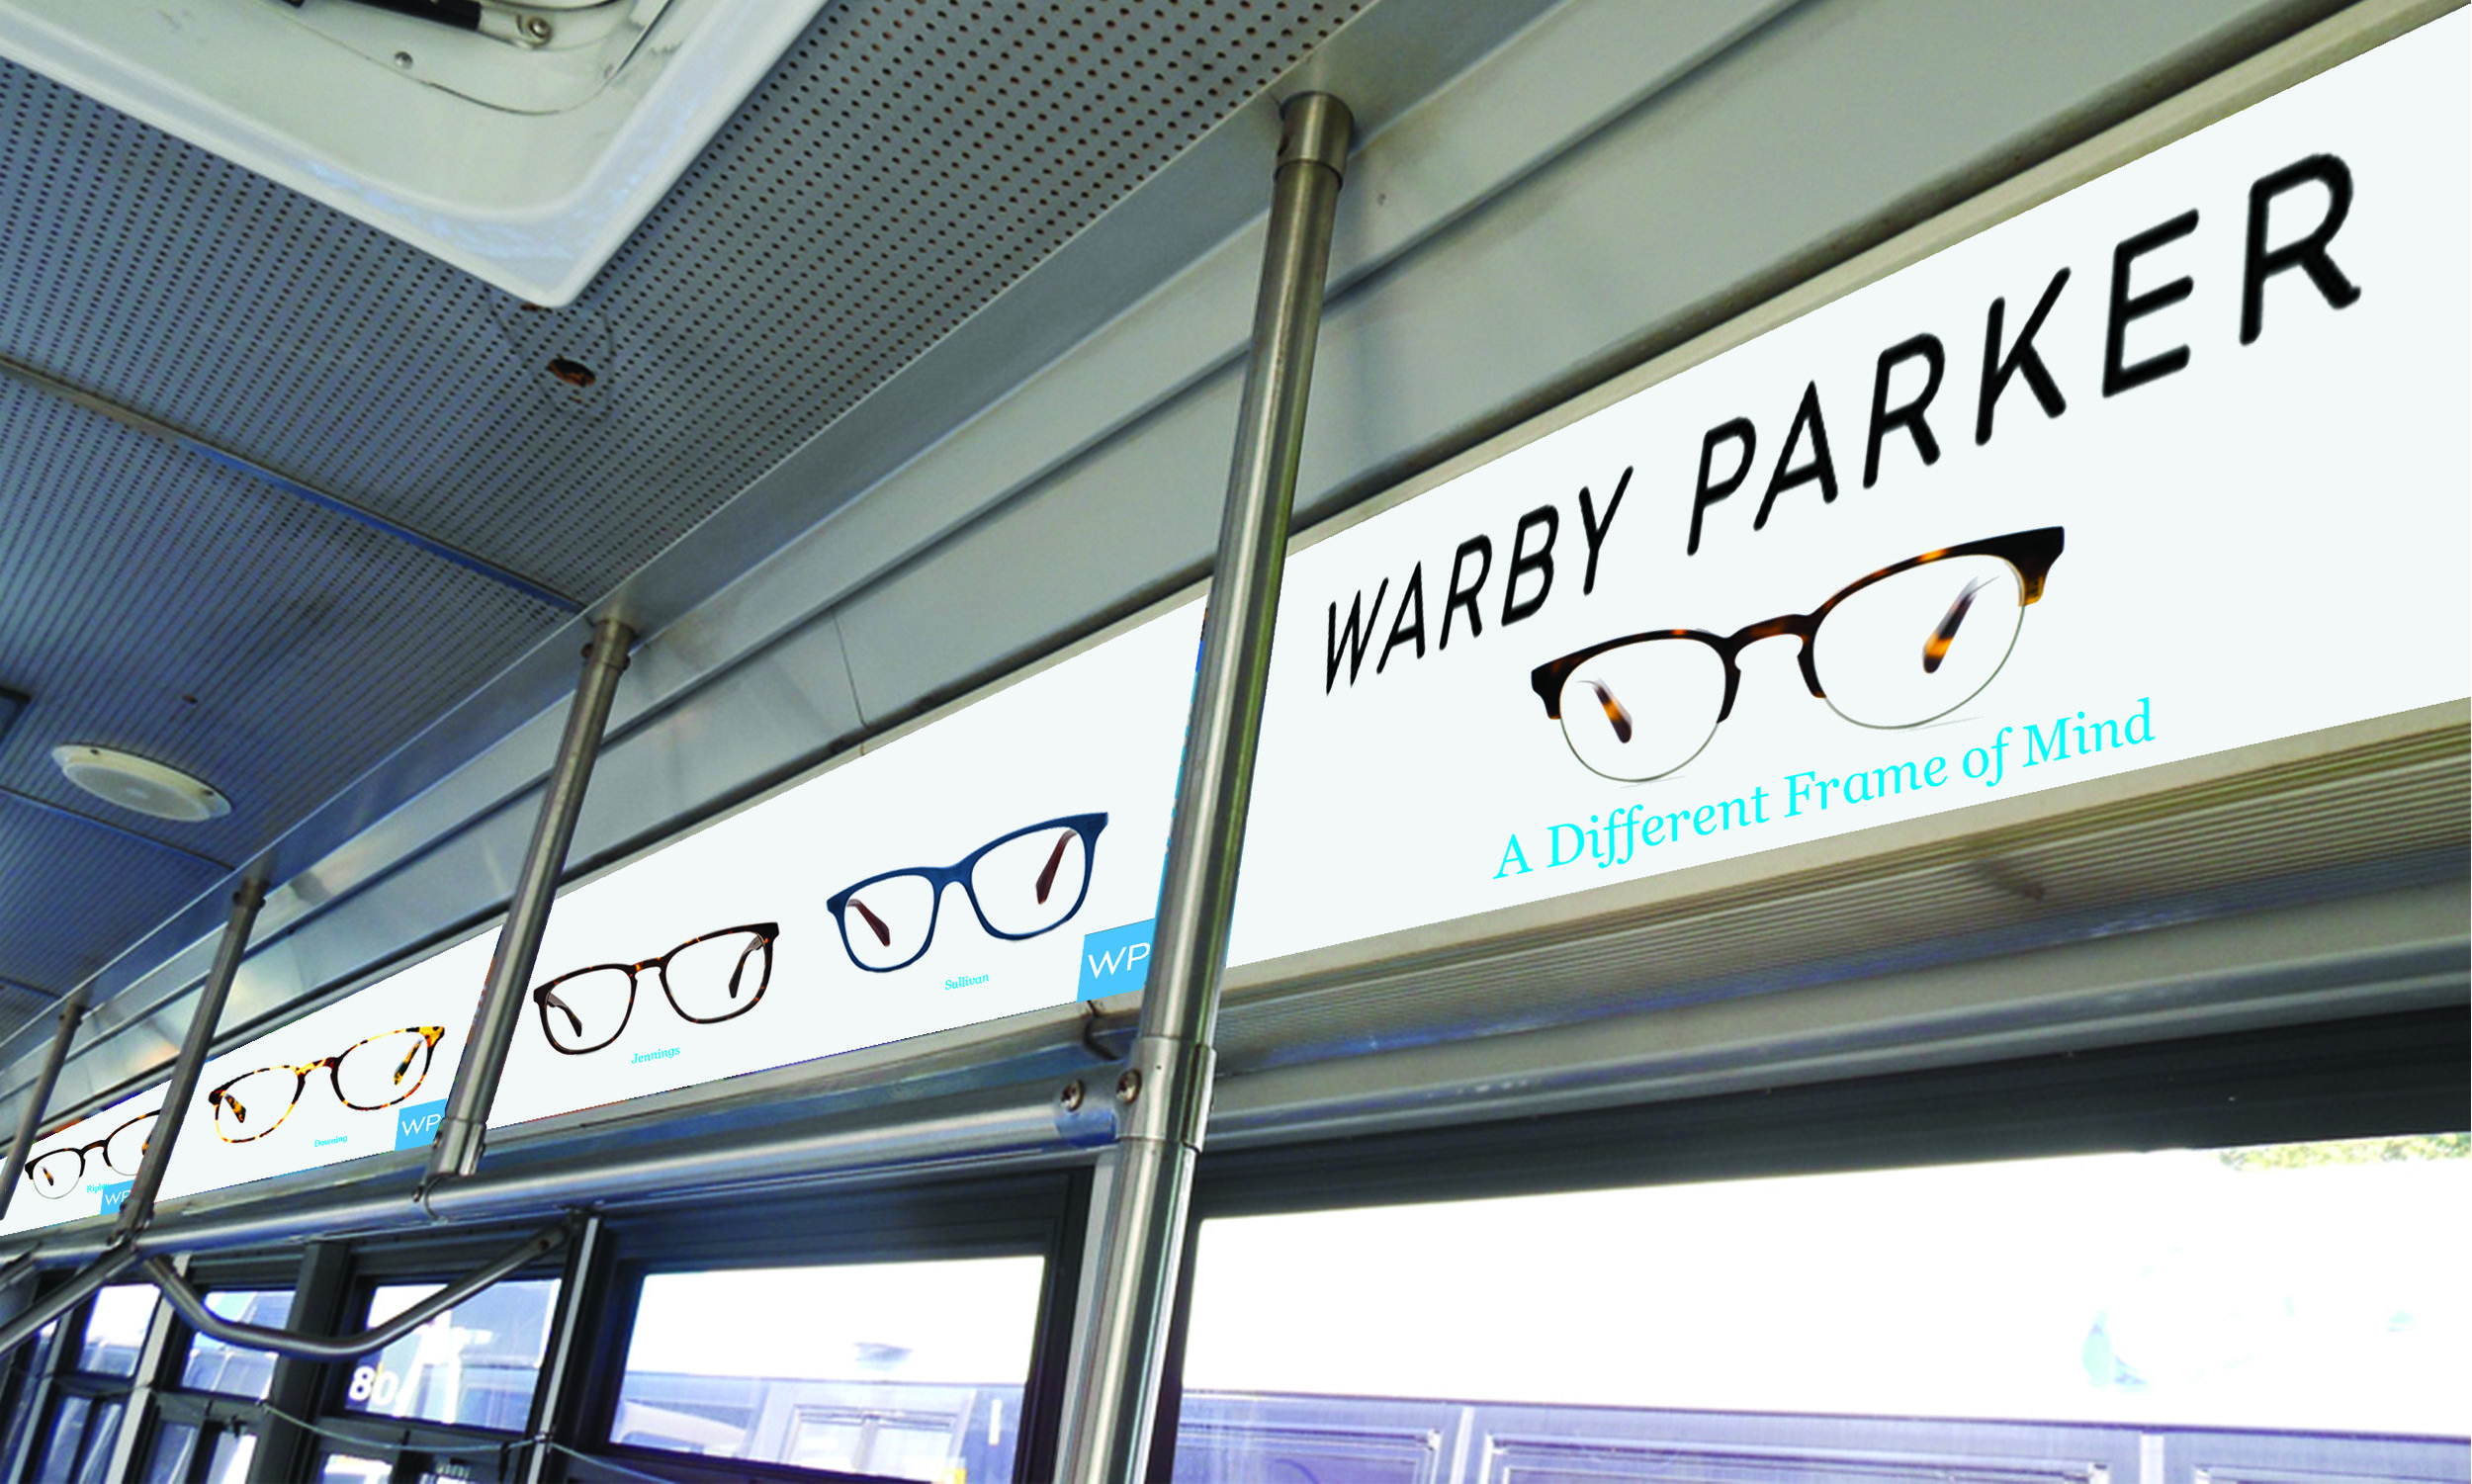 Within the Warby Parker wrapped bus, will also be decked out in the Warby frames.